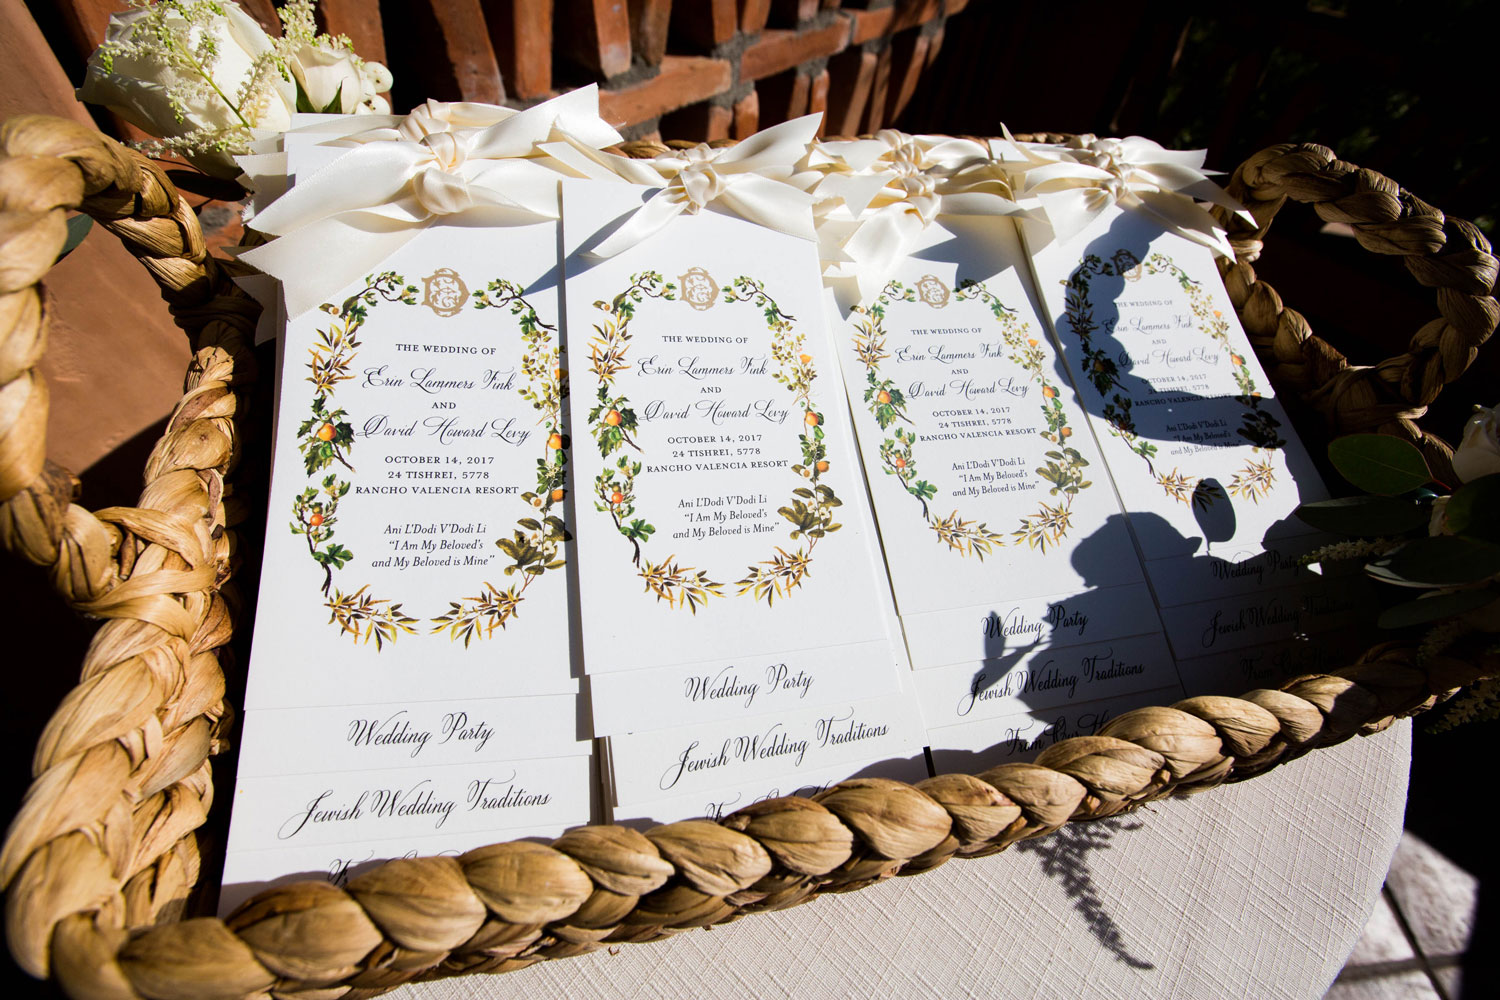 colorful wedding ceremony programs with bows in basket at outdoor wedding